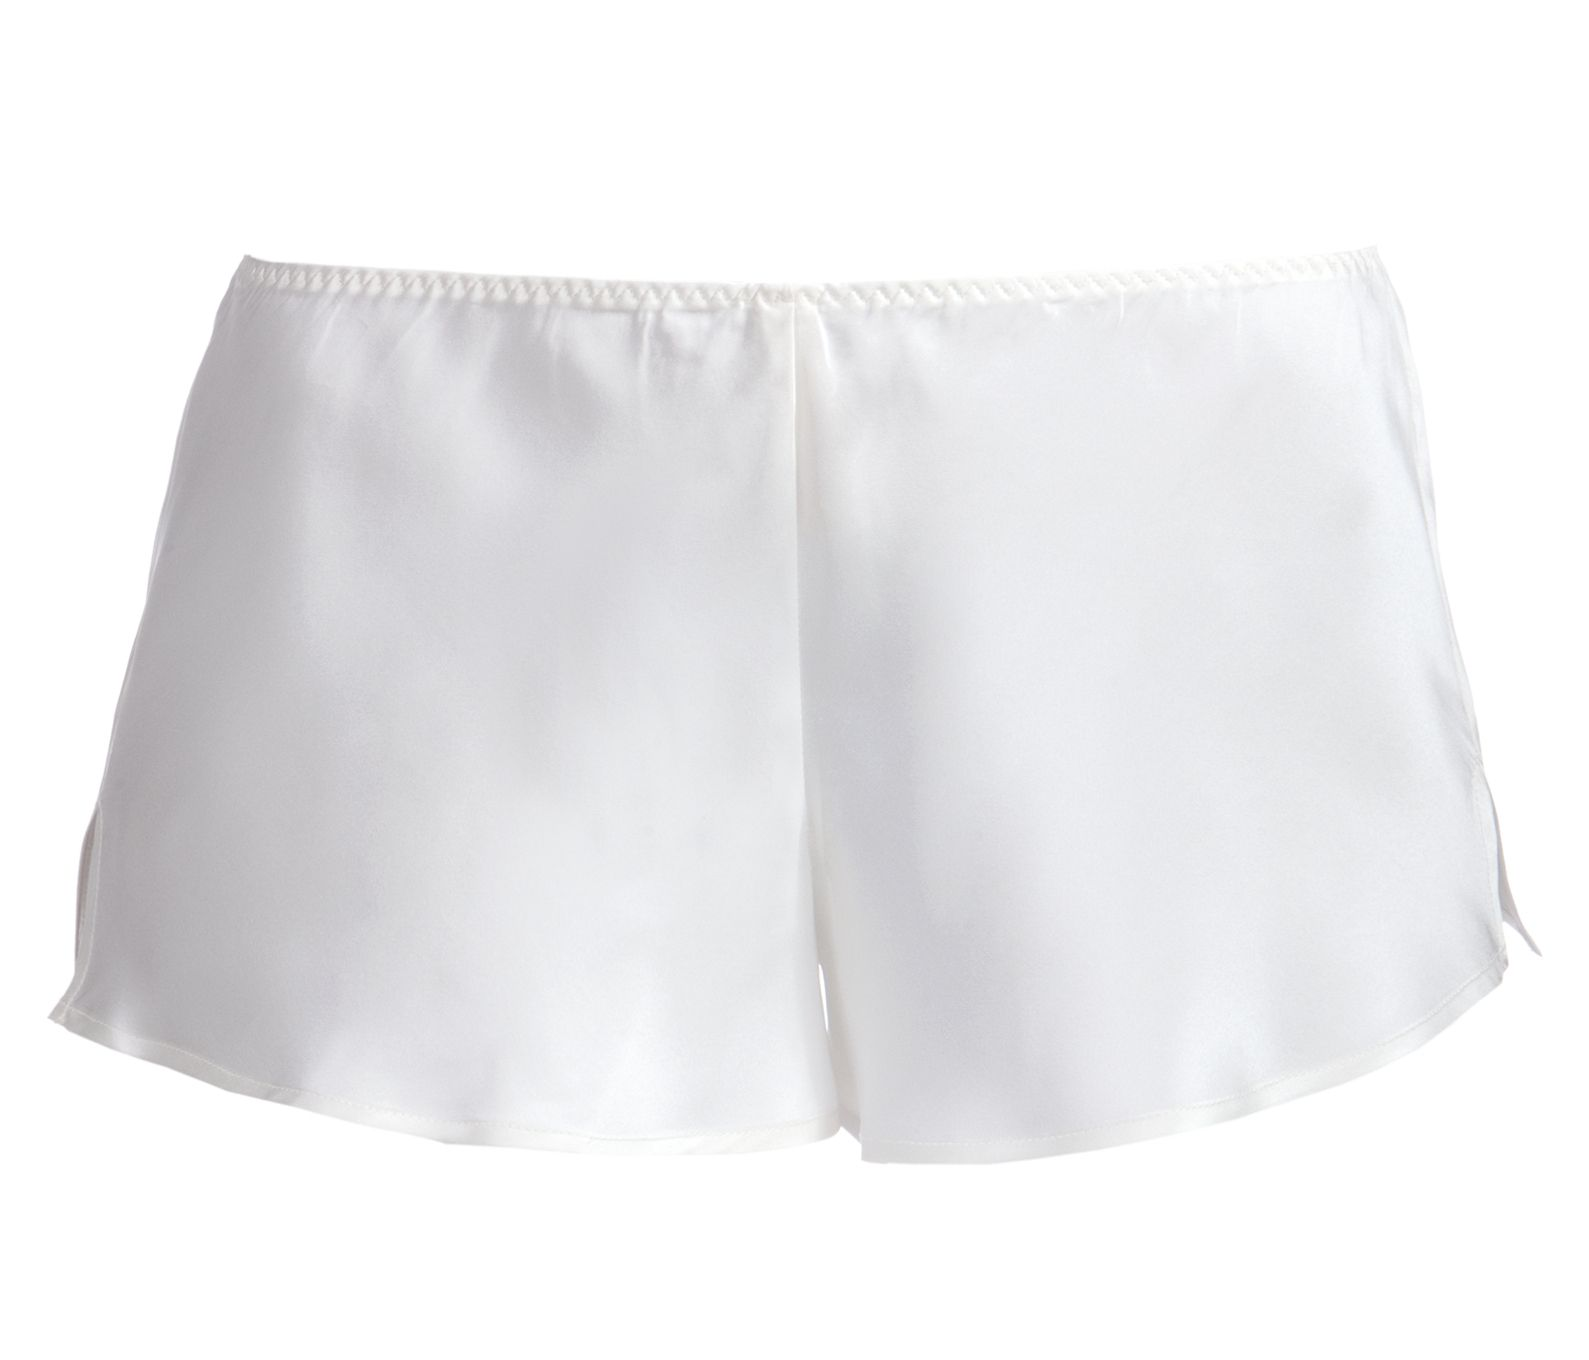 P-SILKY NIGHTS - Hose - Palmers lingerie white silk shorts